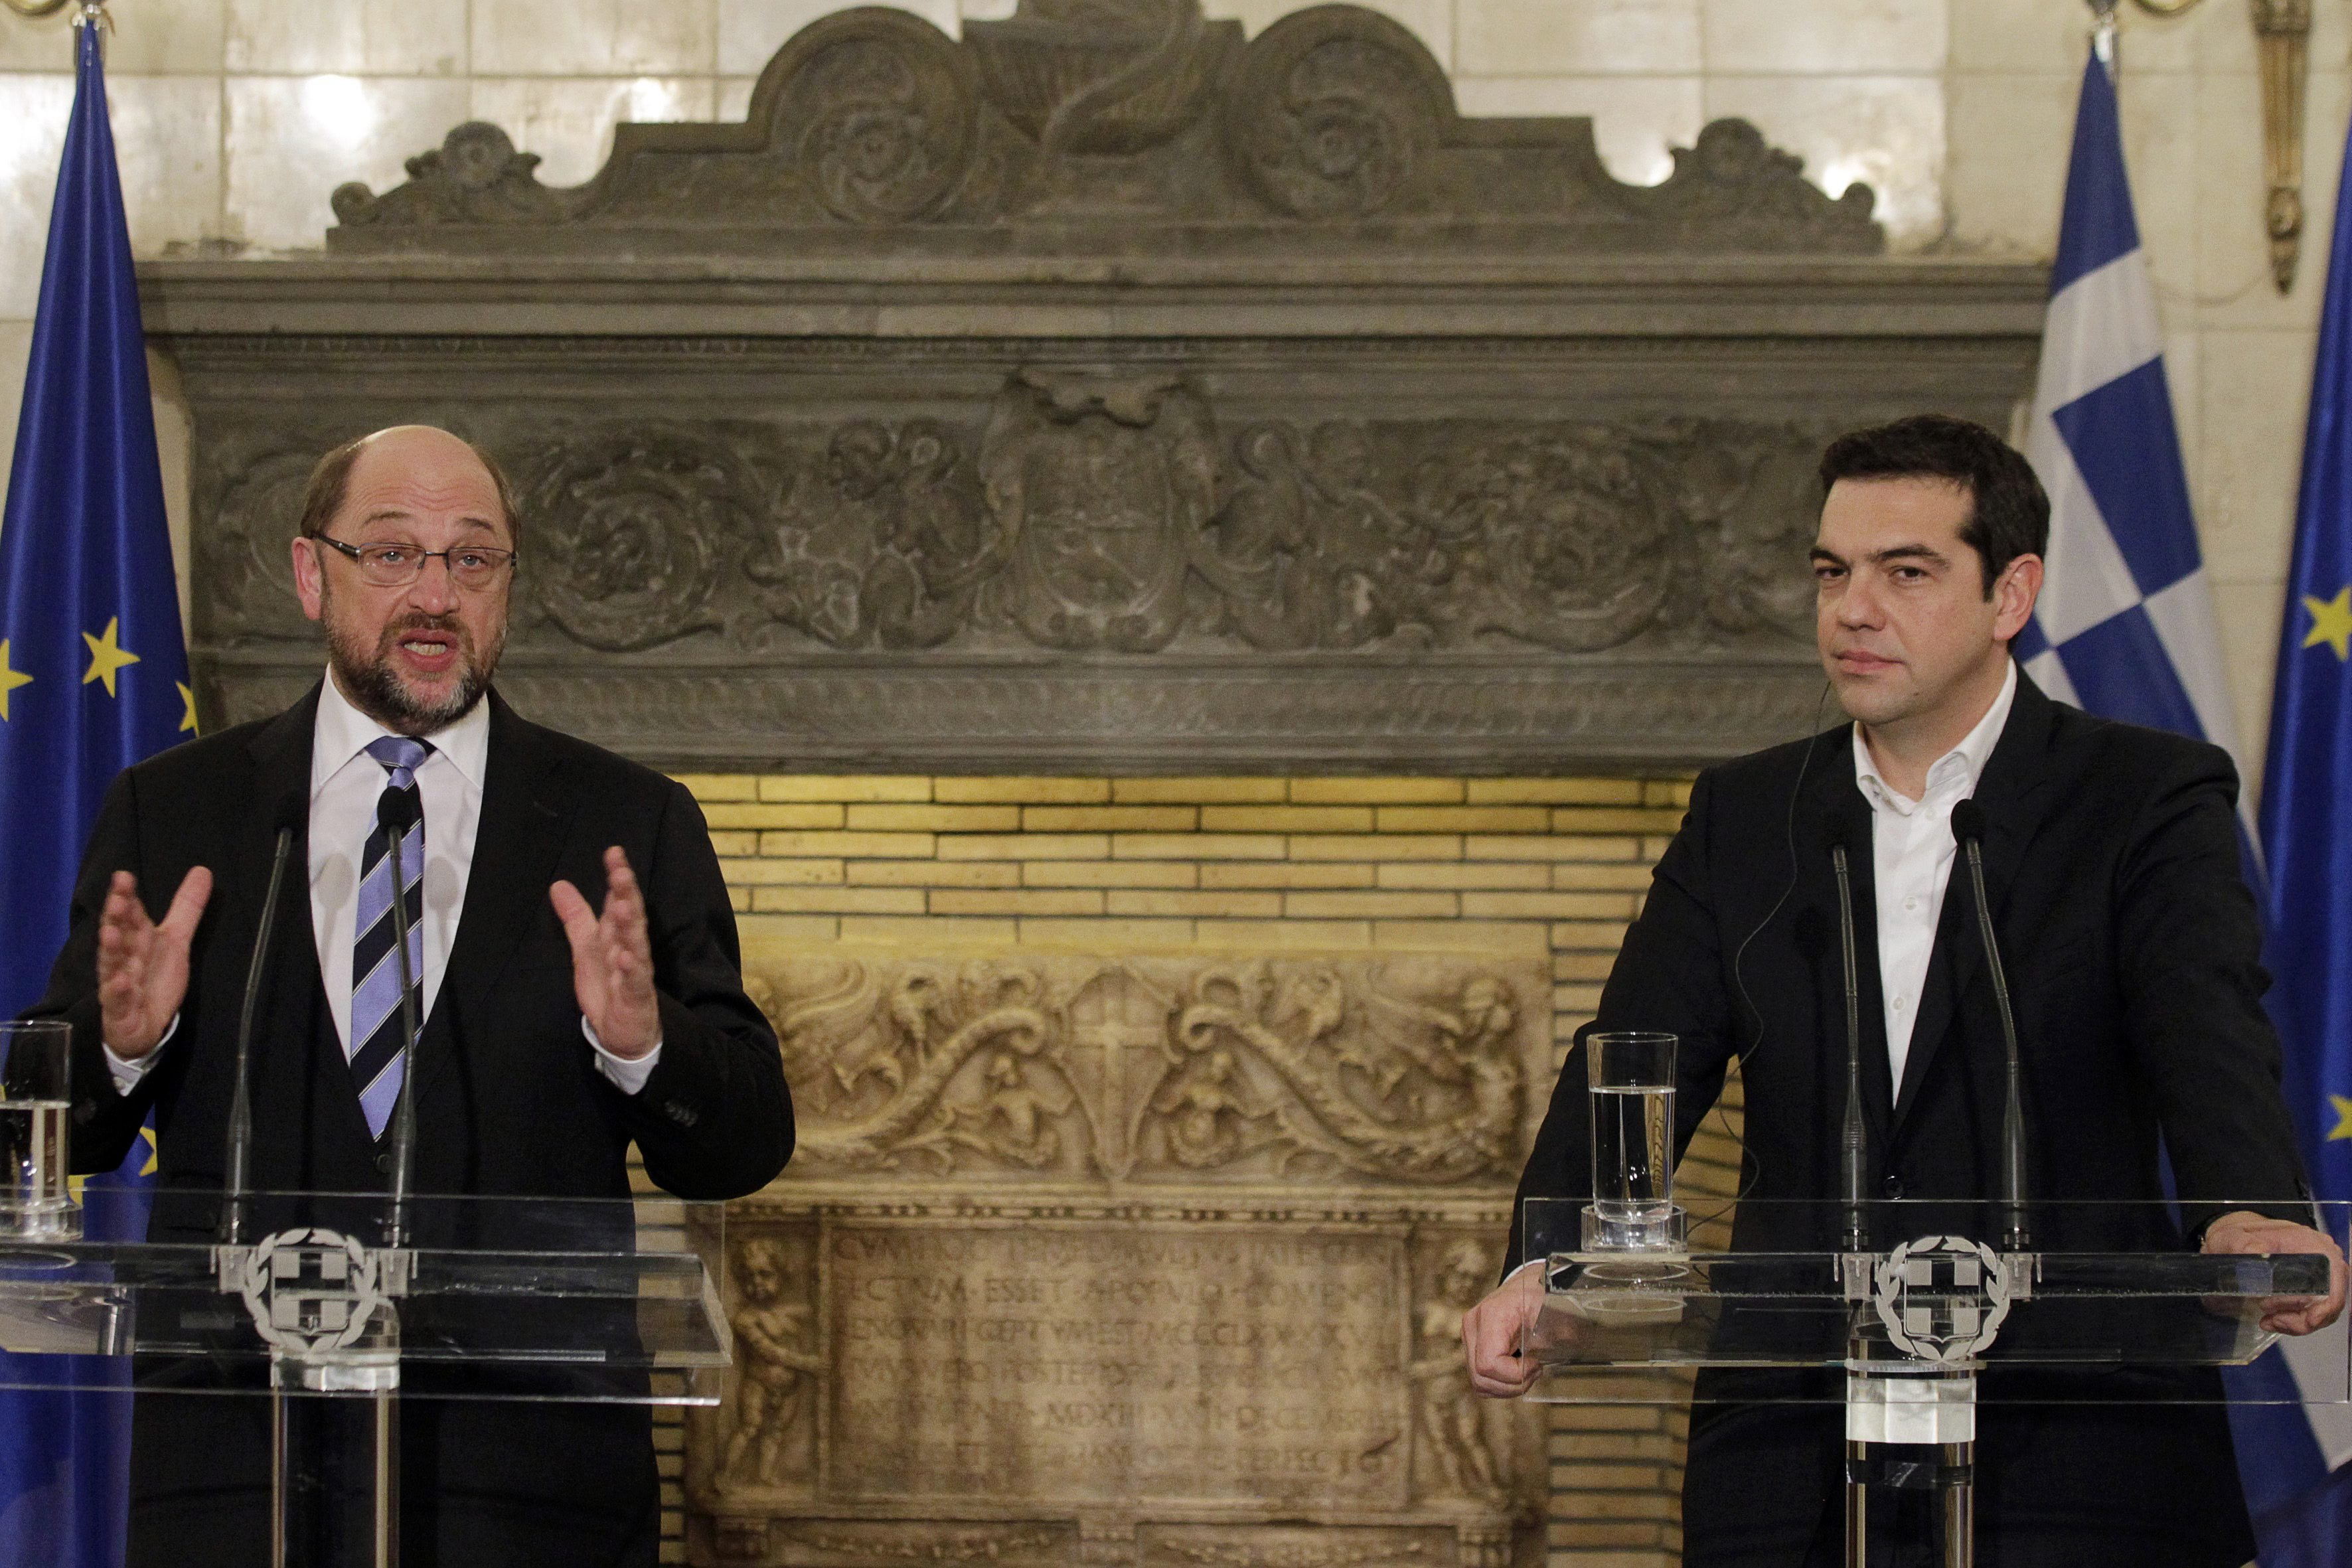 From Left: Martin Schulz (L), President of the European Parliament and Greek Prime Minister Alexis Tsipras make statements after their meeting in Athens on Jan. 29, 2015.